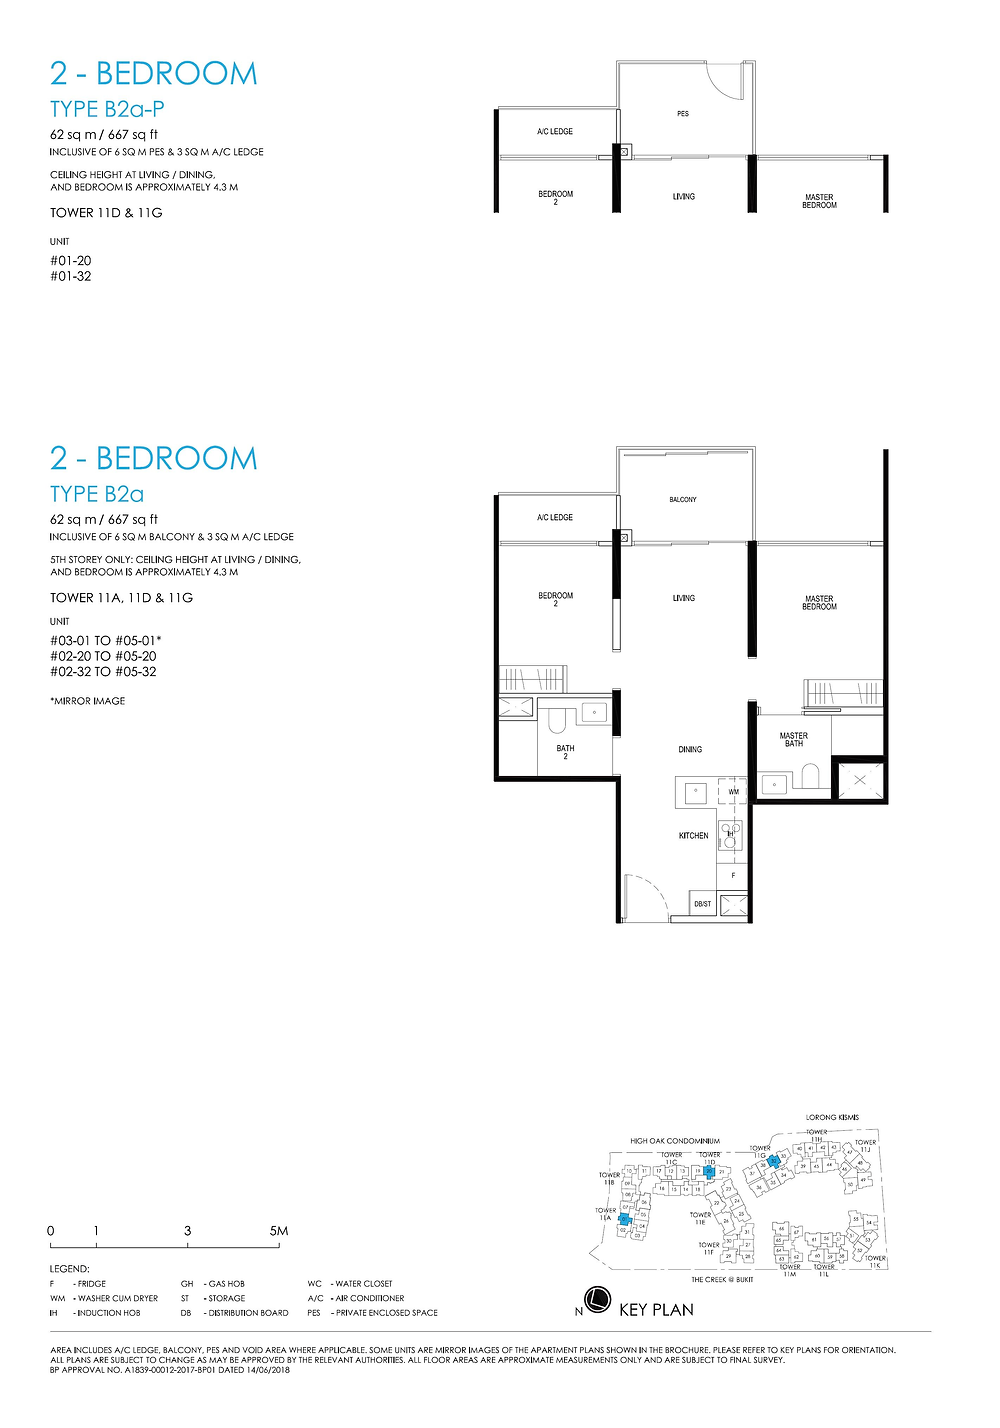 Daintree Residence 2 Bedroom Dumbbell Layout